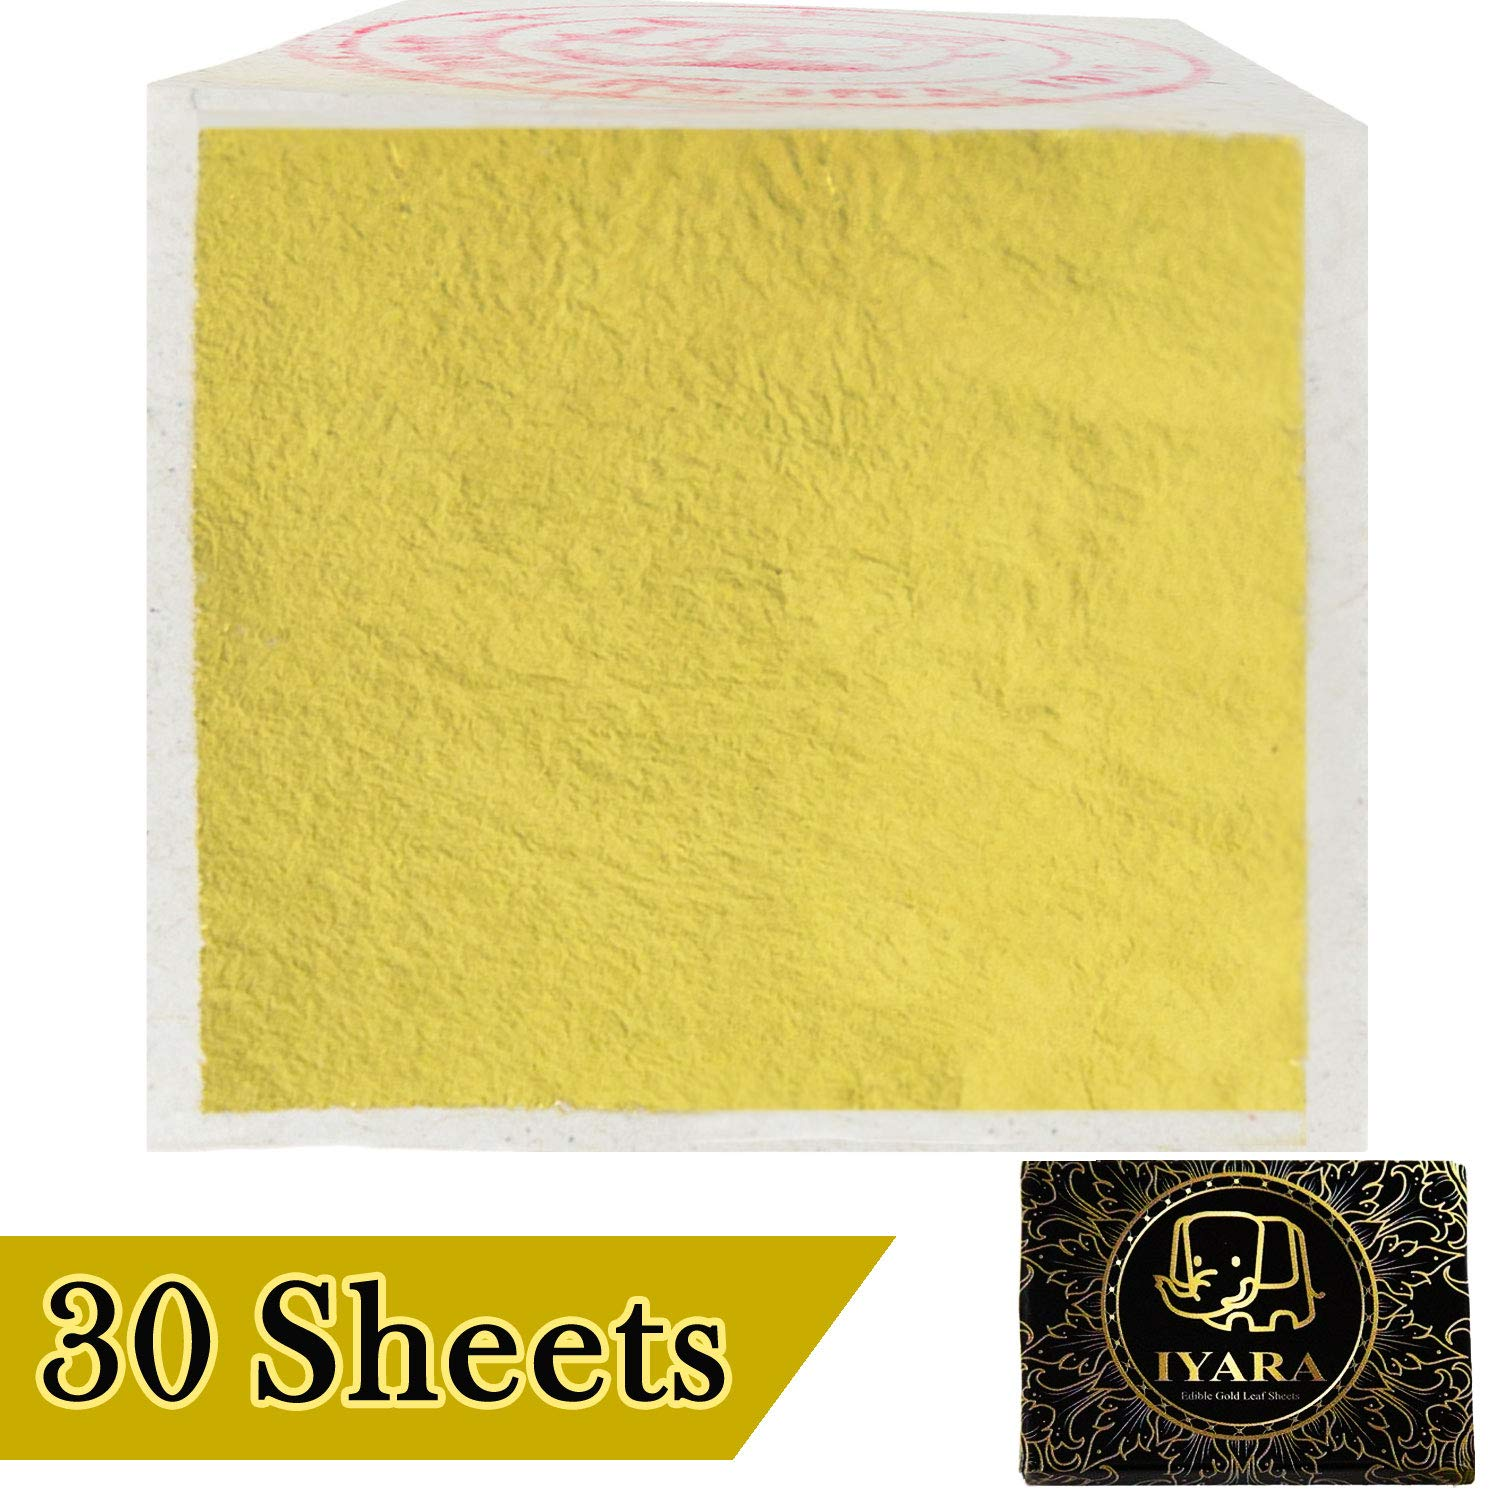 IYARA 30 Edible Leaf Sheets – Multipurpose 24 Karat Yellow Gold Leaves for Food and Cake Decoration, Spa, Anti-Wrinkle Face Masks, Art, Crafts, Gilding, Restoration, DIY Projects (1.2'' x 1.2'')